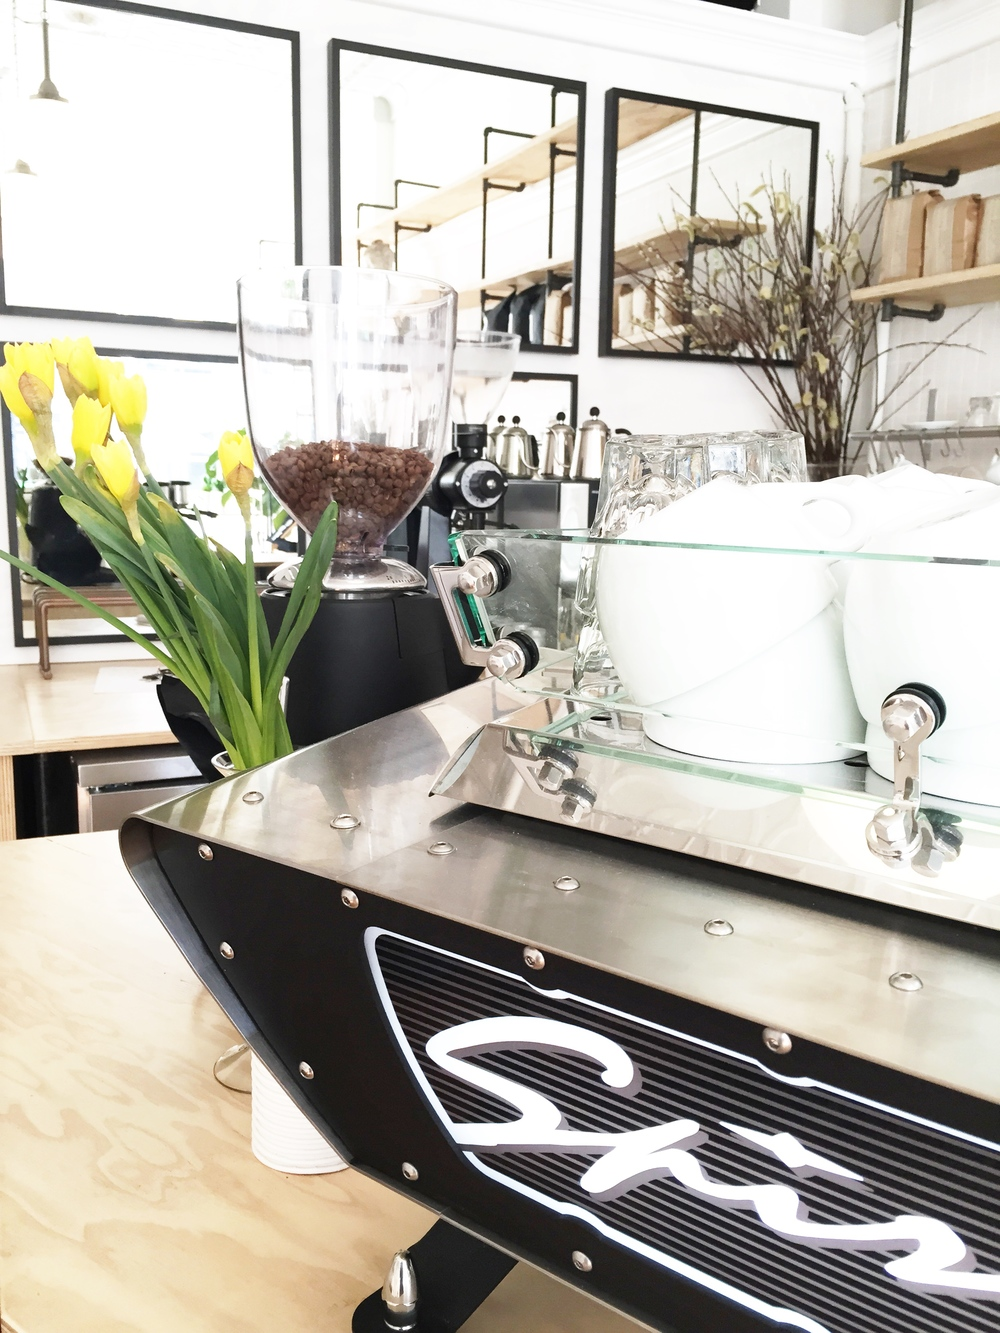 Spirit espresso machine and flowers at 4121 Main, Pittsburgh